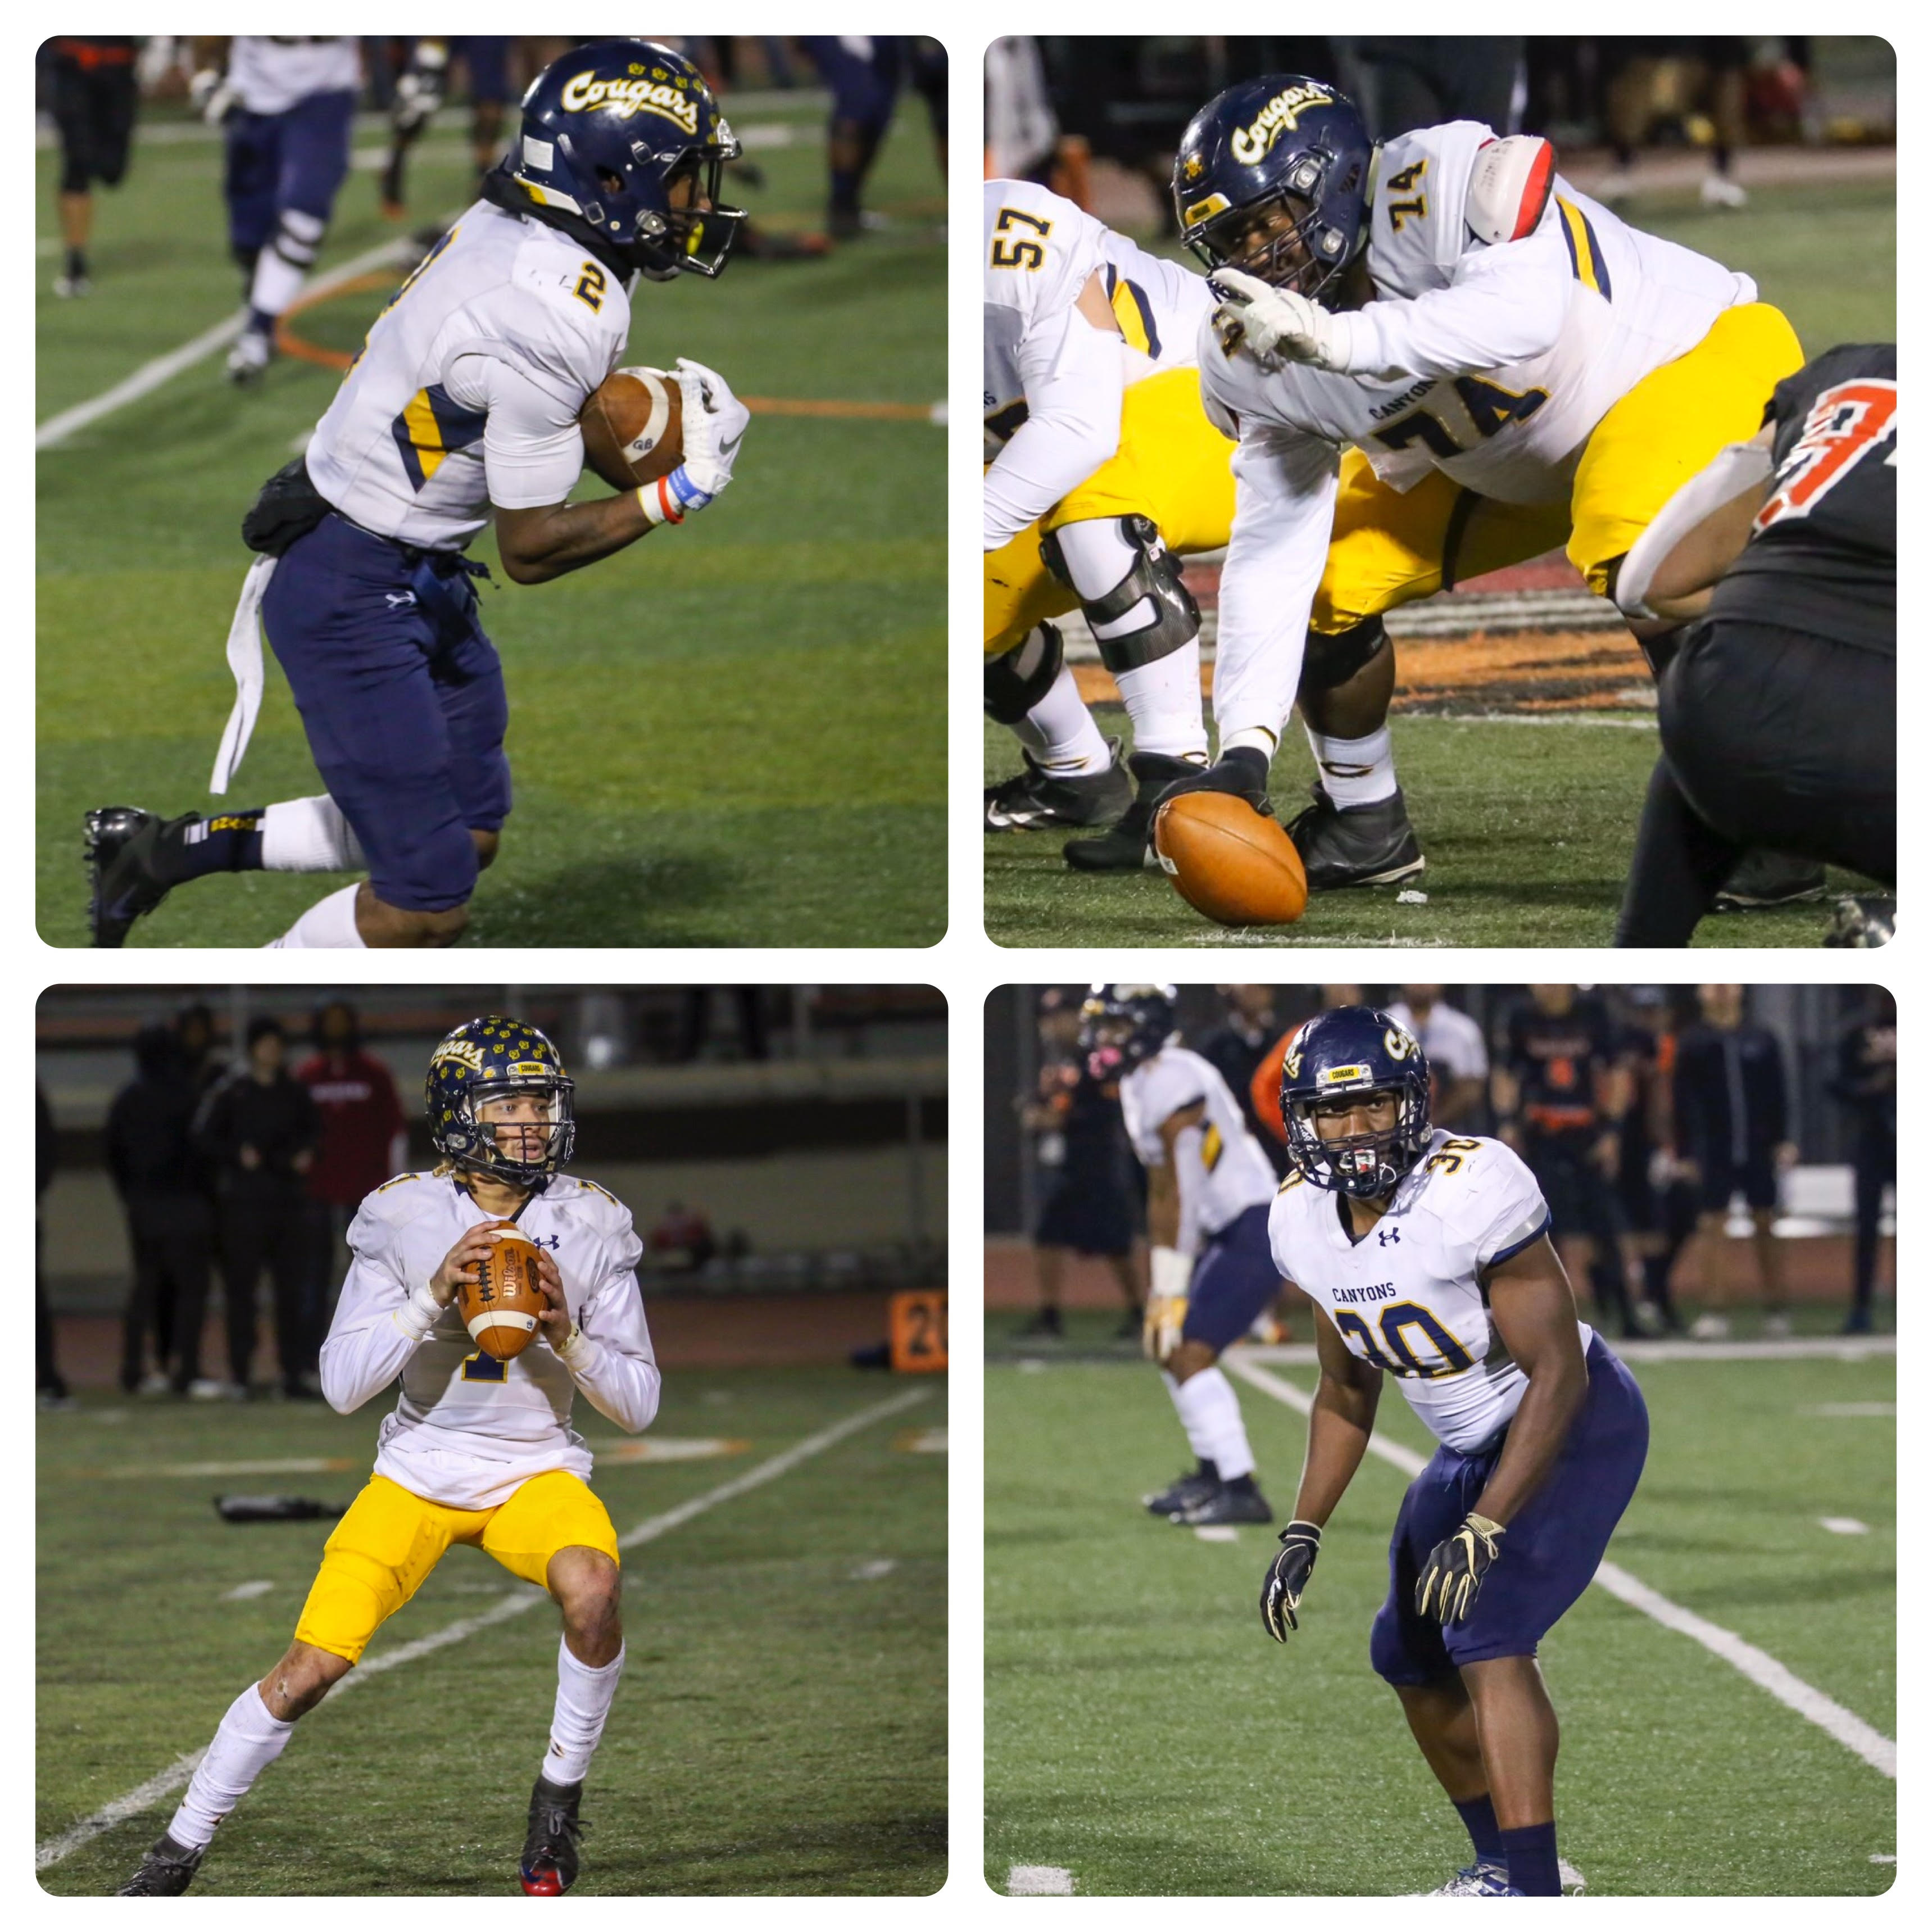 Wide receiver Alonzell Henderson and center Jordan Palmer are representing College of the Canyons as selections to the 2019 California Community College Football Coaches Association (CCCFCA) All-America Team, headlining a class of honorees that also includes four All-State Team selections.